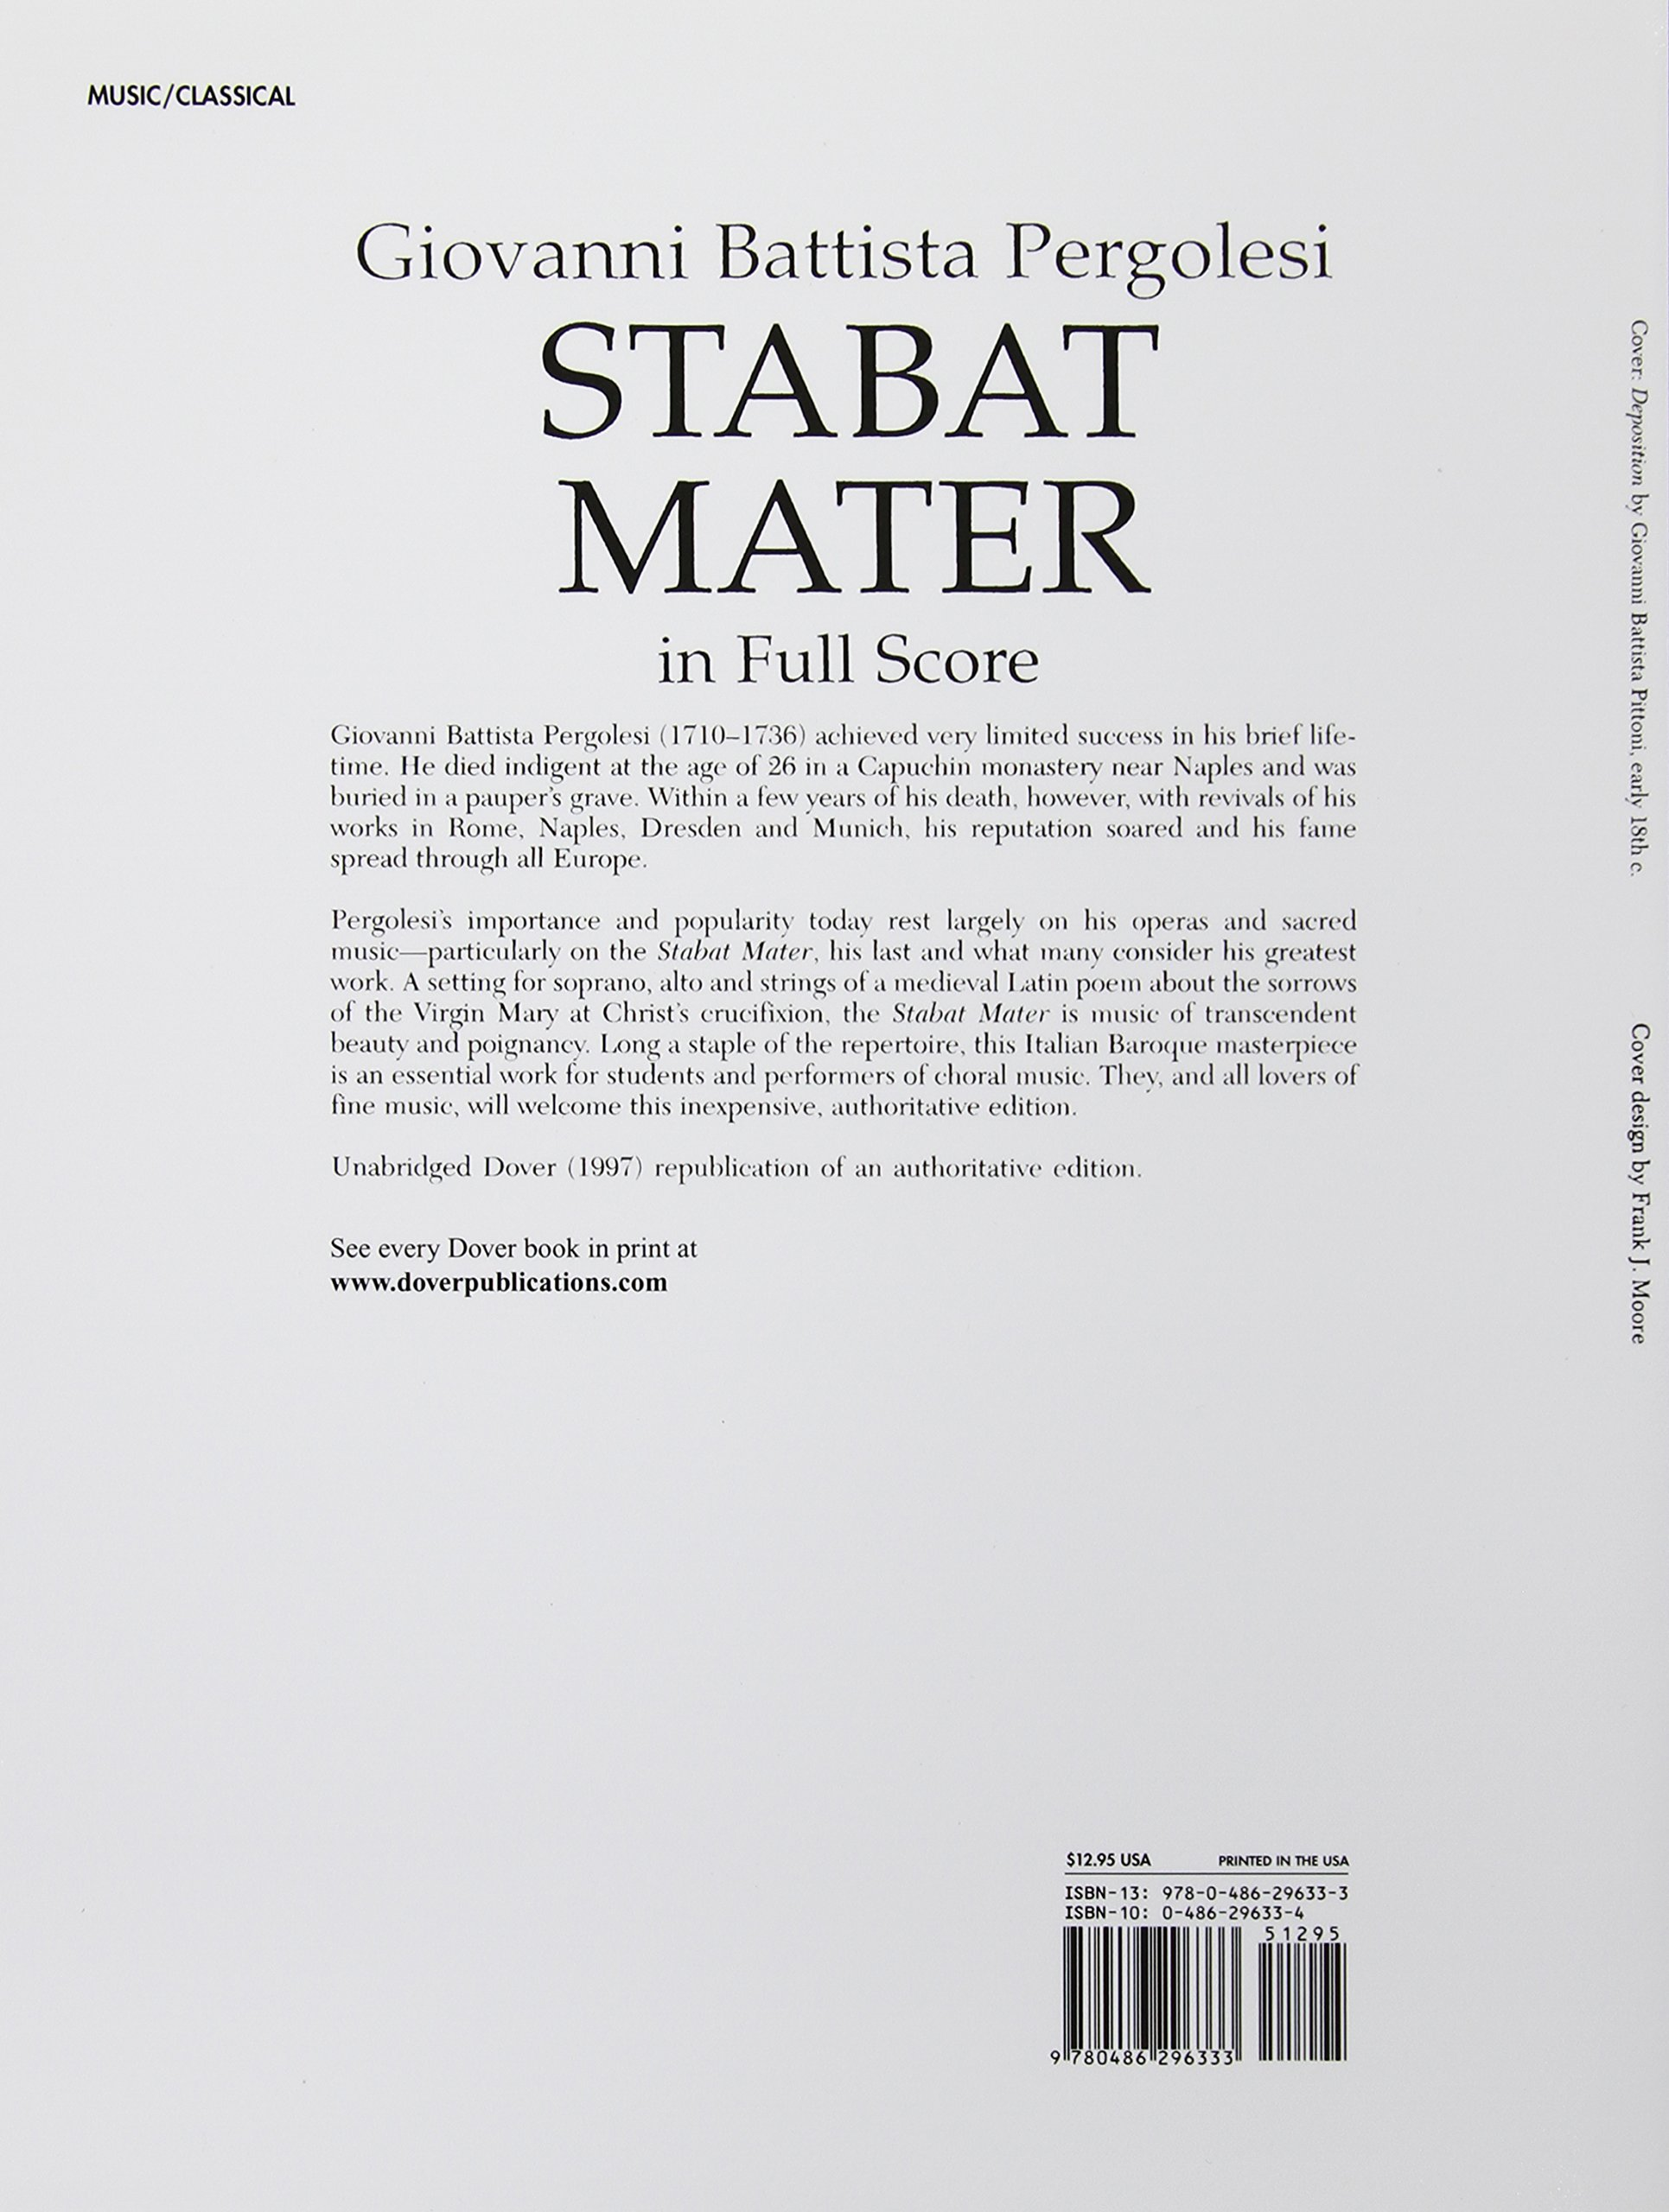 Stabat mater in full score dover music scores giovanni battista stabat mater in full score dover music scores giovanni battista pergolesi opera and choral scores 0800759296330 amazon books fandeluxe Choice Image